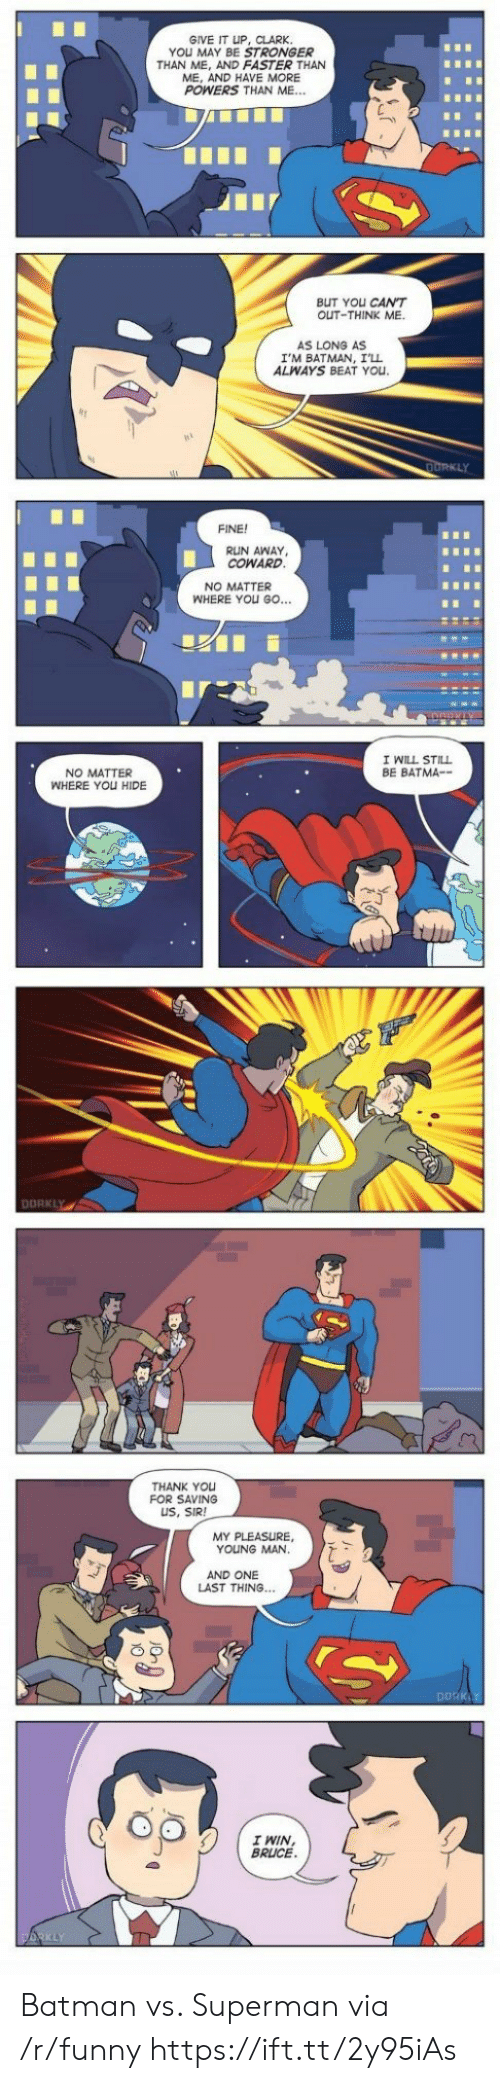 my pleasure: GIVE IT UP, CLARK  YOU MAY BE STRONGER  THAN ME, AND FASTER THAN  ME, AND HAVE MORE  POWERS THAN ME...  BUT YOu CANT  OUT-THINK ME.  AS LONG AS  I'M BATMAN, I'll  ALWAYS BEAT YOu  FINE!  RUN AWAY  COWARD  NO MATTER  WHERE YOU GO...  I WILL STILL  BE BATMA--  NO MATTER  WHERE YOU HIDE  DORKLY  THANK You  FOR SAVING  US, SIR!  MY PLEASURE,  YOUNG MAN  AND ONE  LAST THING.  DDRK  I WIN  BRLUCE Batman vs. Superman via /r/funny https://ift.tt/2y95iAs